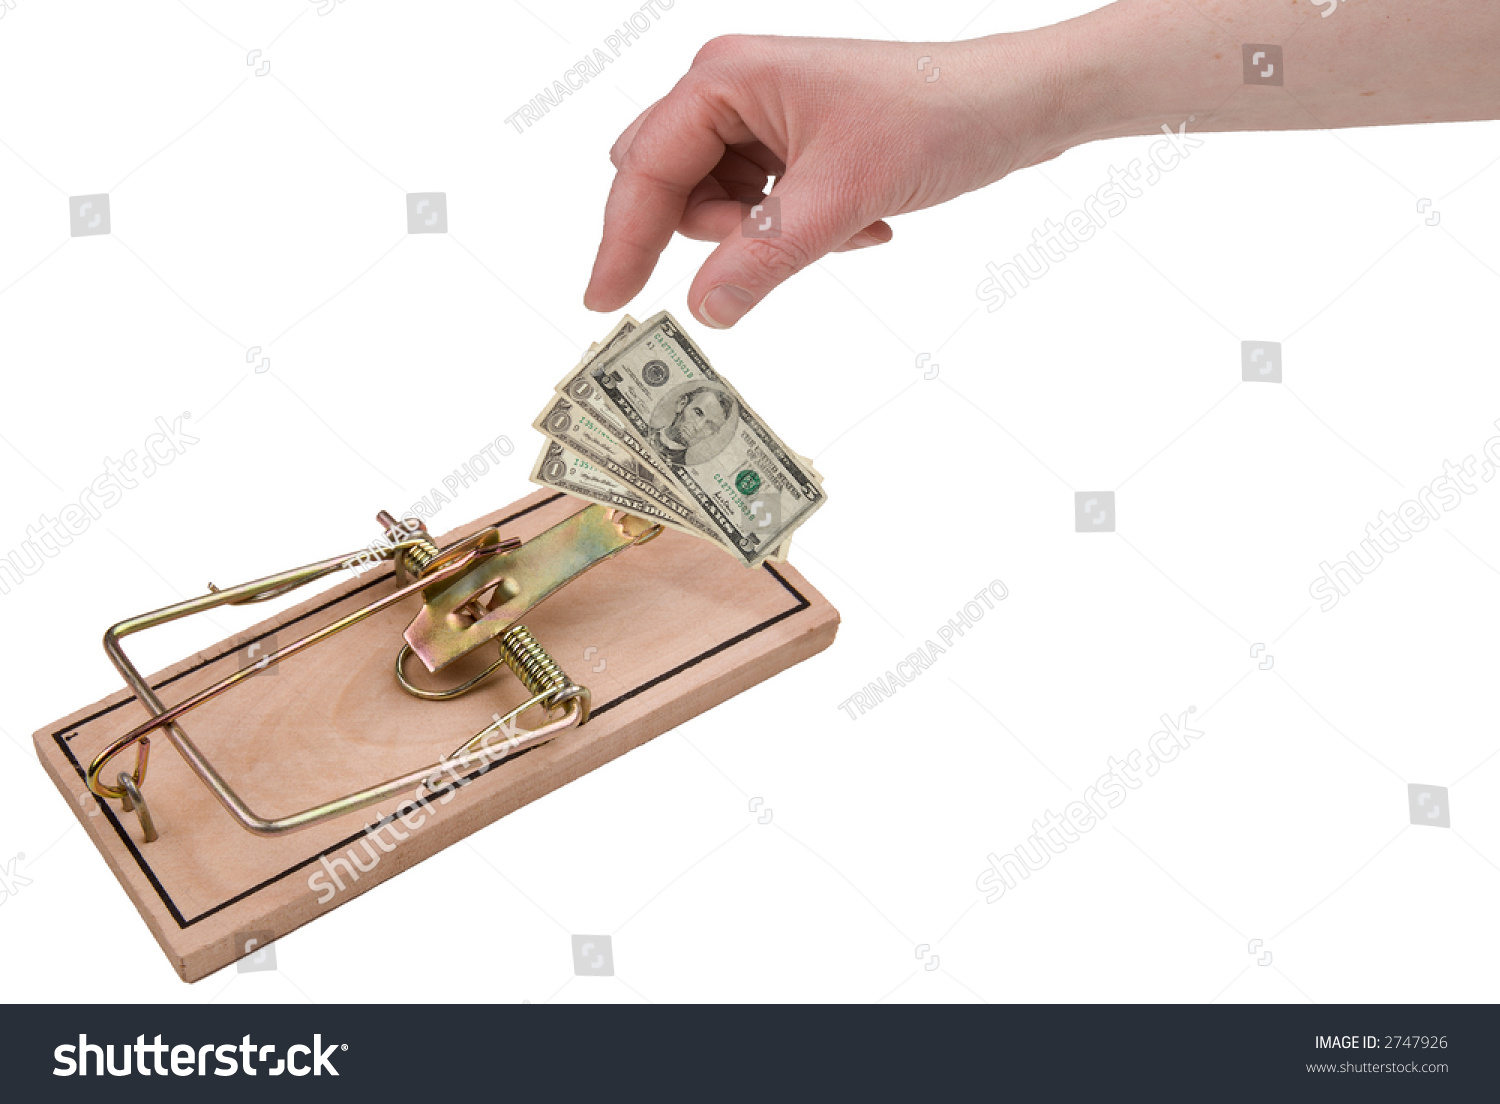 how to get money from a bankrupt person